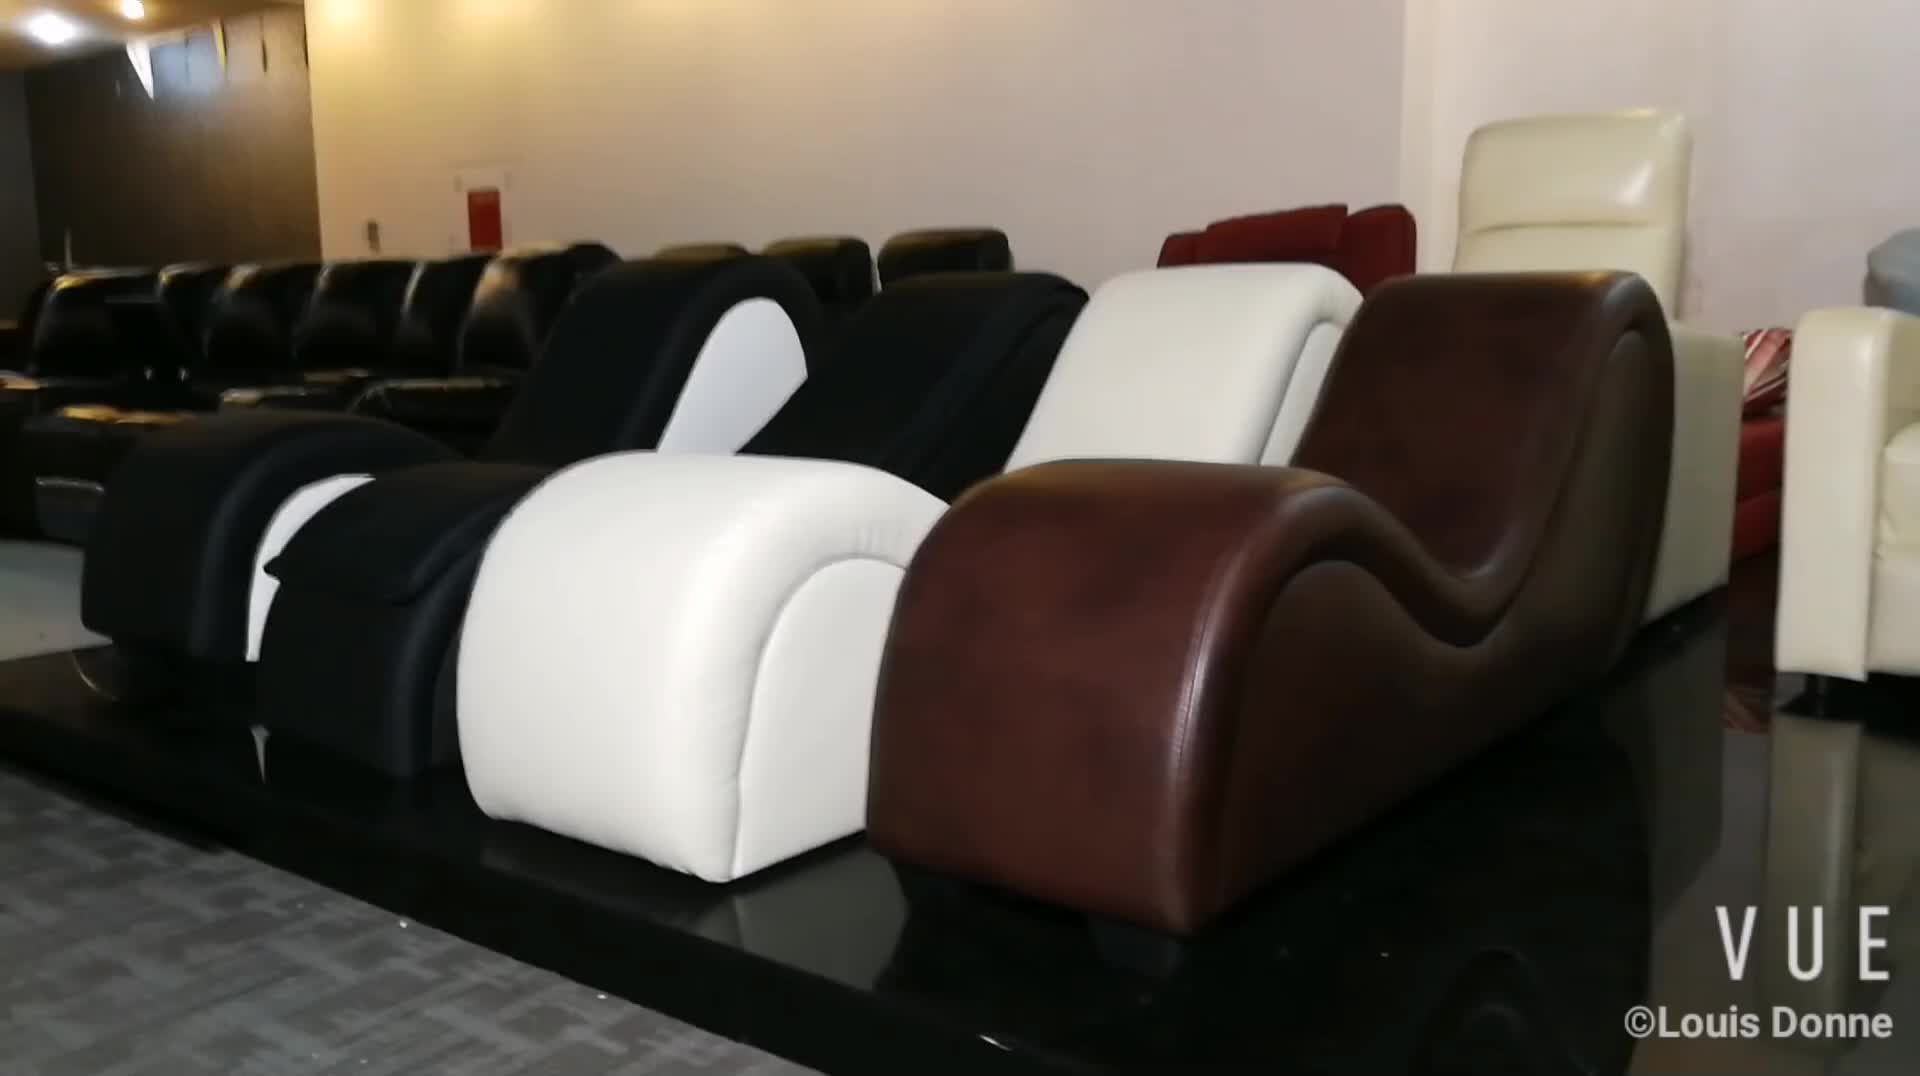 Amazon Hotel Furniture Design Making Love Sofa Love Sex Chair Buy Sex Sofa Chair Love Sex Sofa Chair Sex Lounge Sofa Chair Product On Alibaba Com